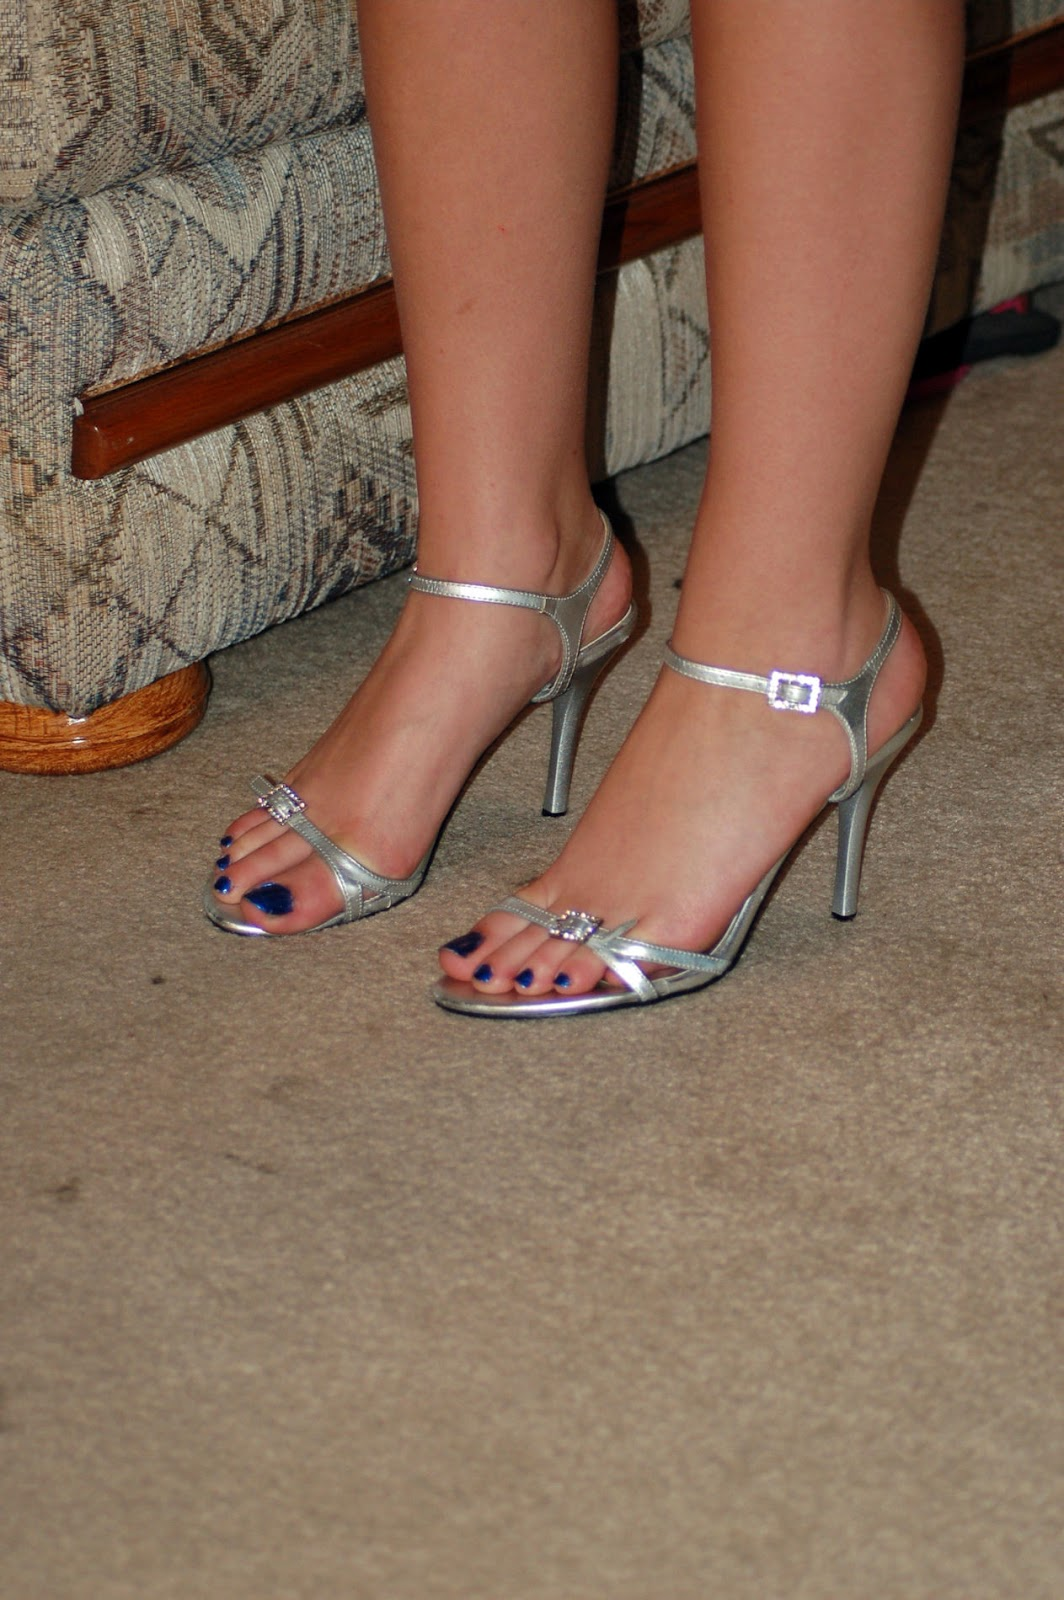 feets pictures Girls